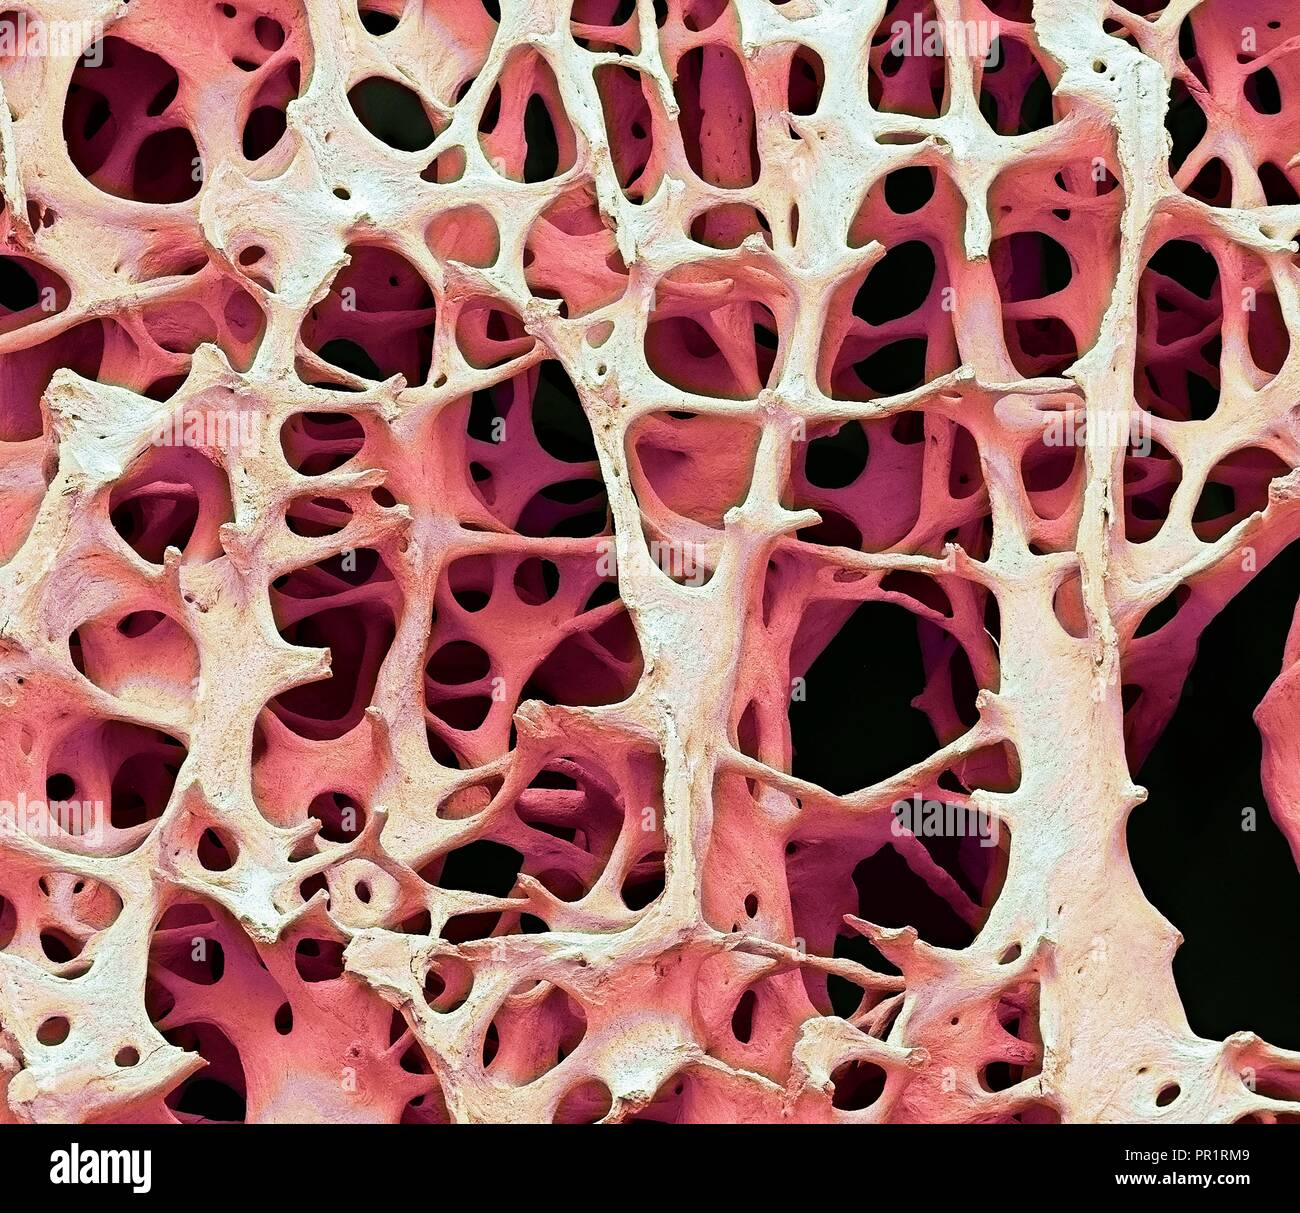 Compact Bone Tissue High Resolution Stock Photography And Images Alamy